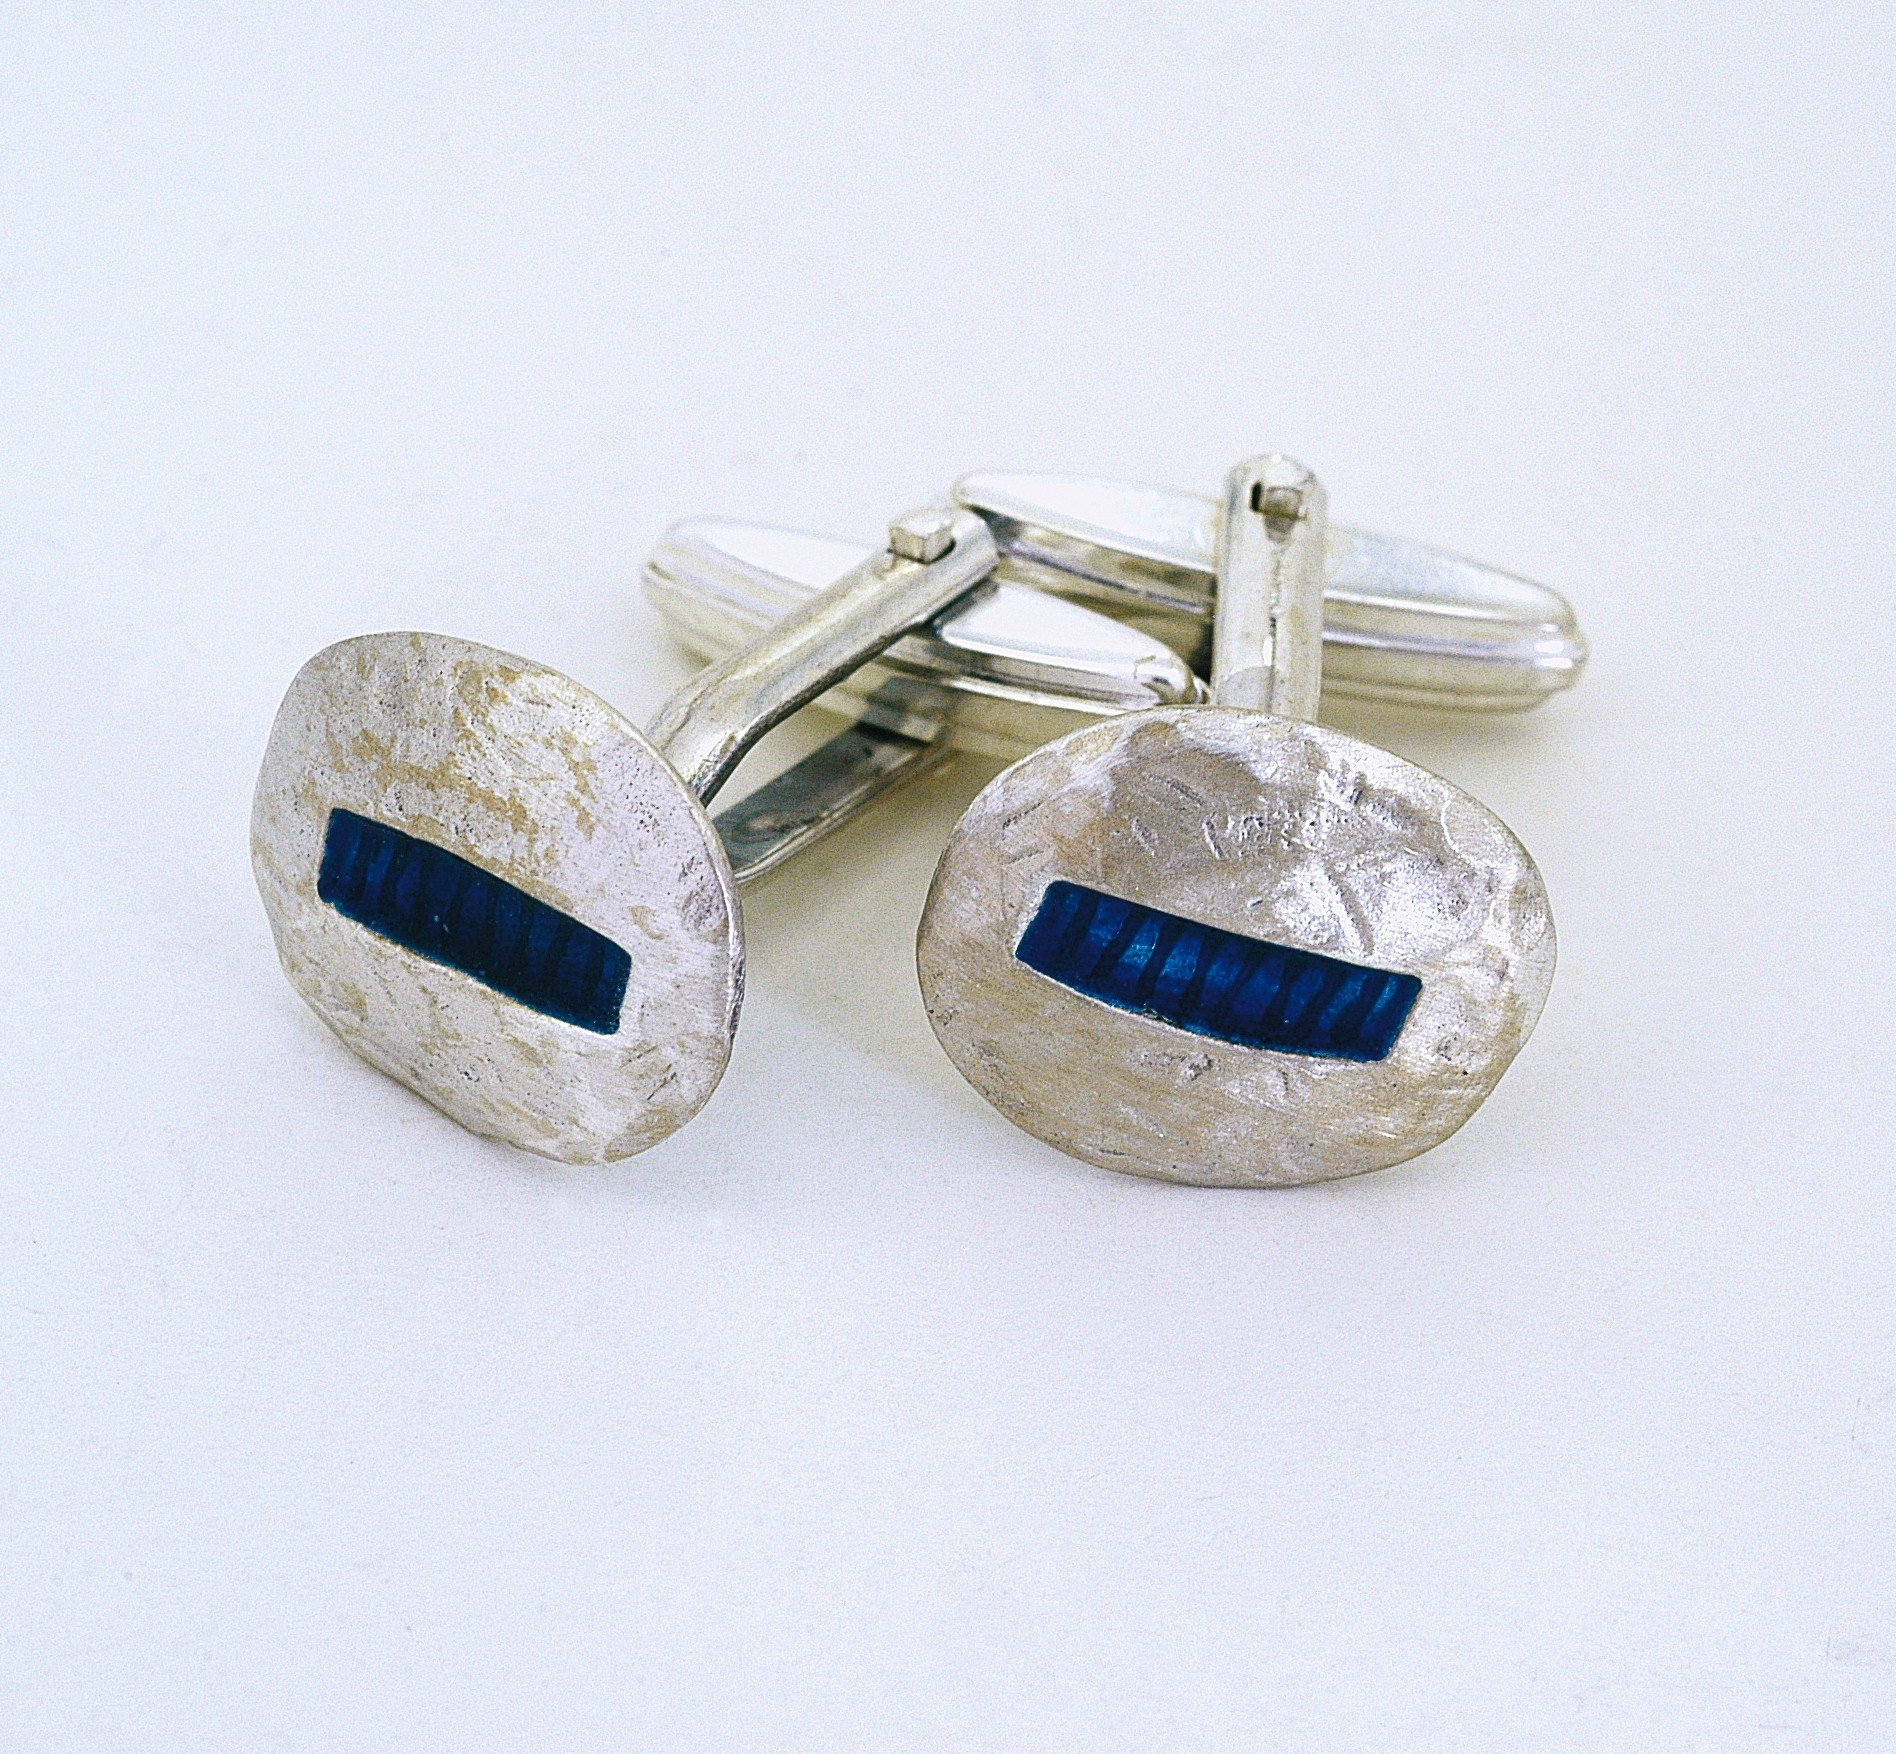 Silver cuff links 925 with enamel